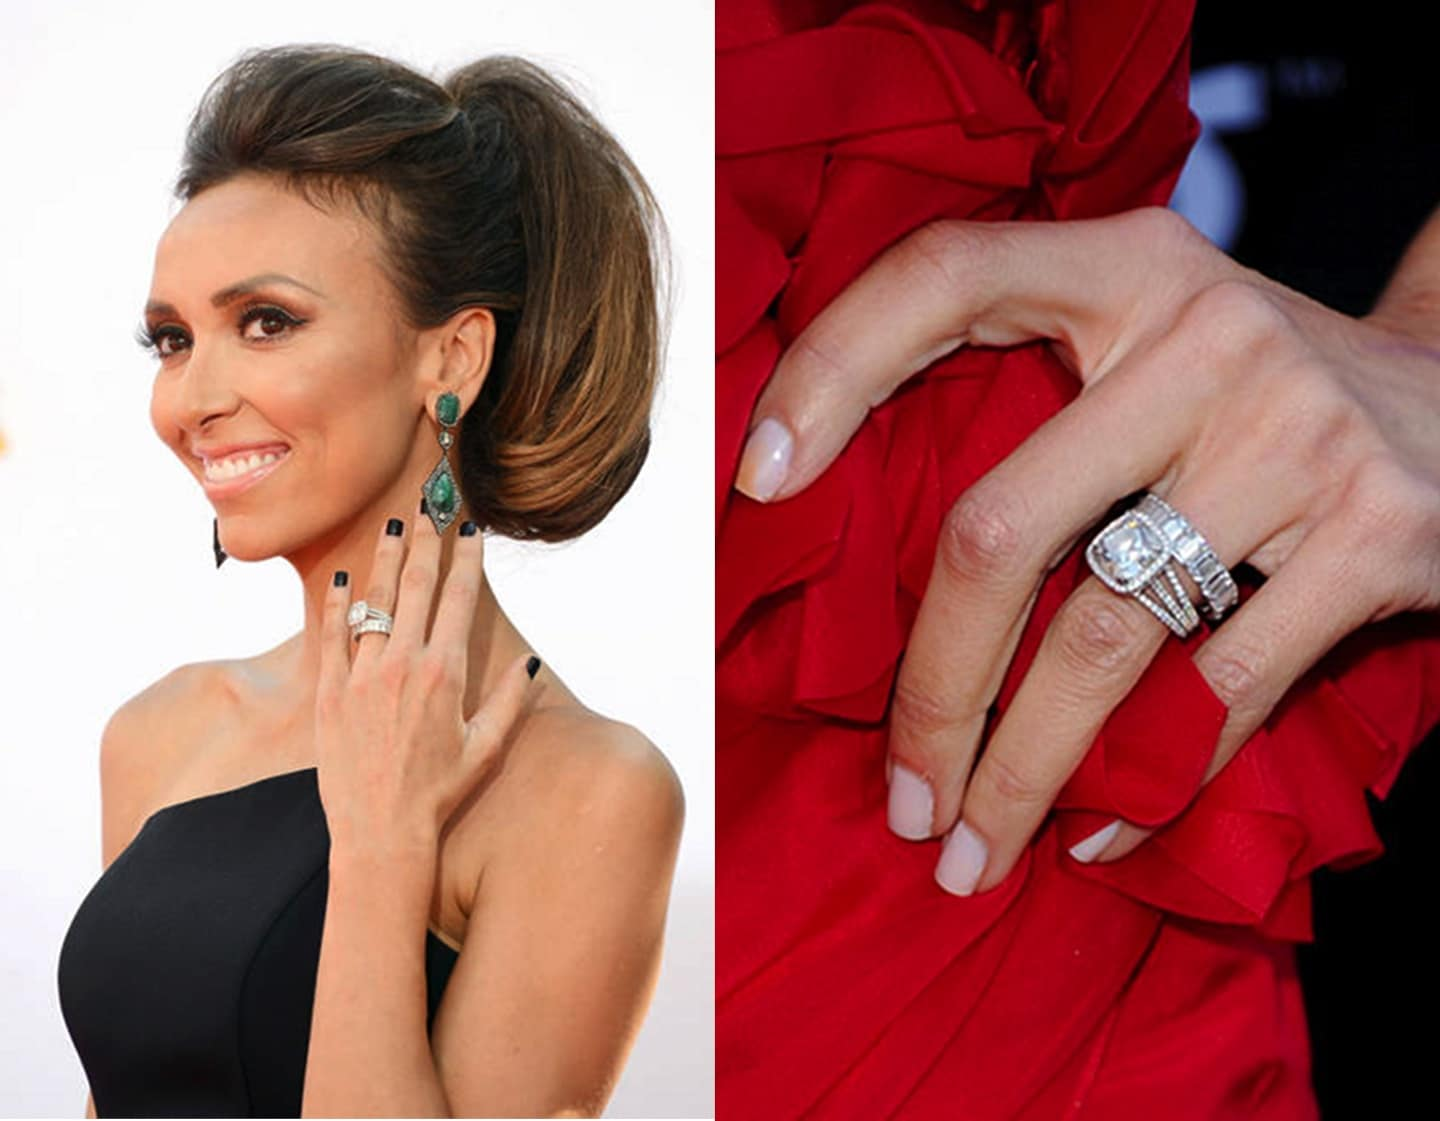 How to copy and propose with celebrity engagement rings